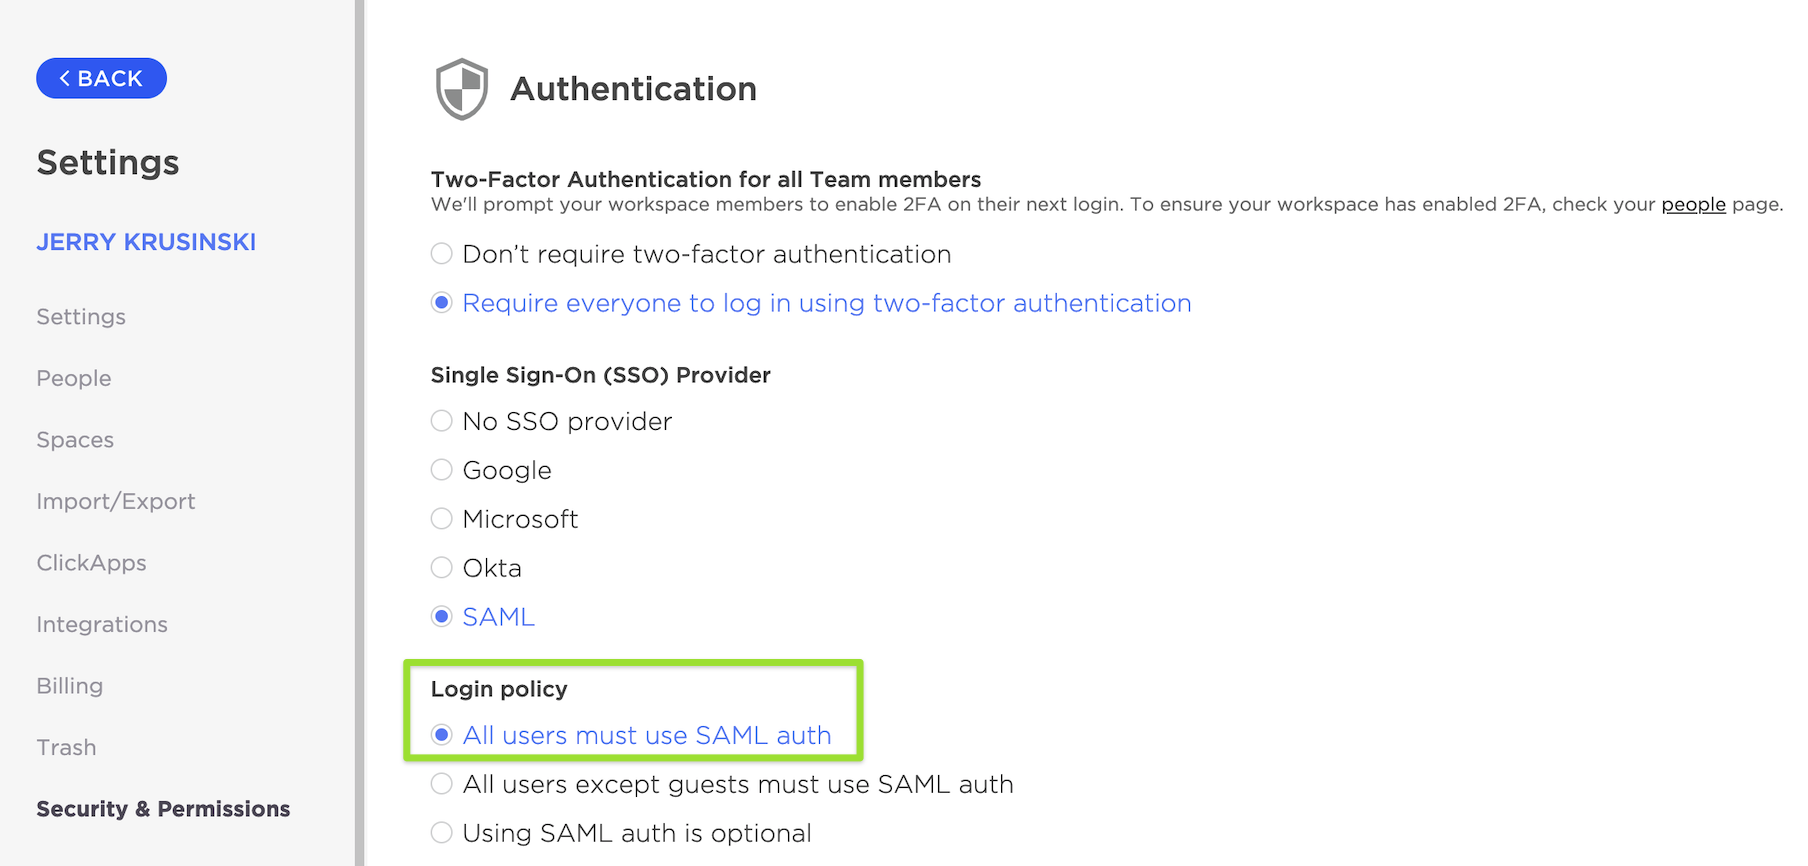 Security & Permissions page highlighting the Login policy option to enforce SAML SSO for all users of the Workspace